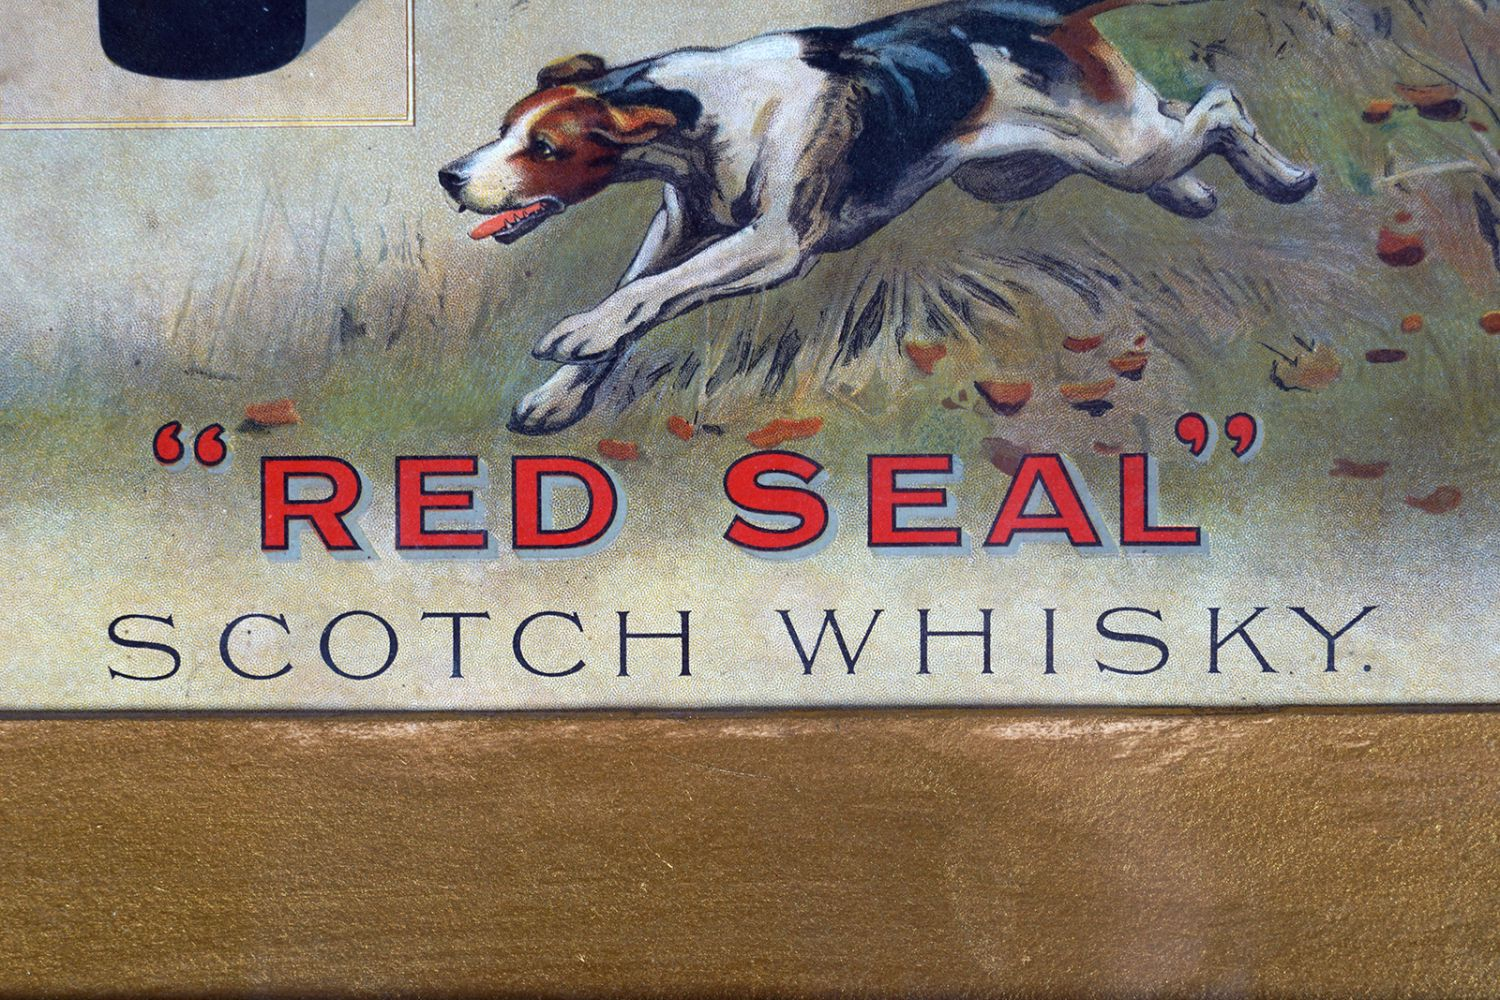 BUCHANAN'S 'RED SEAL' SCOTCH WHISKY POSTER - Image 3 of 4